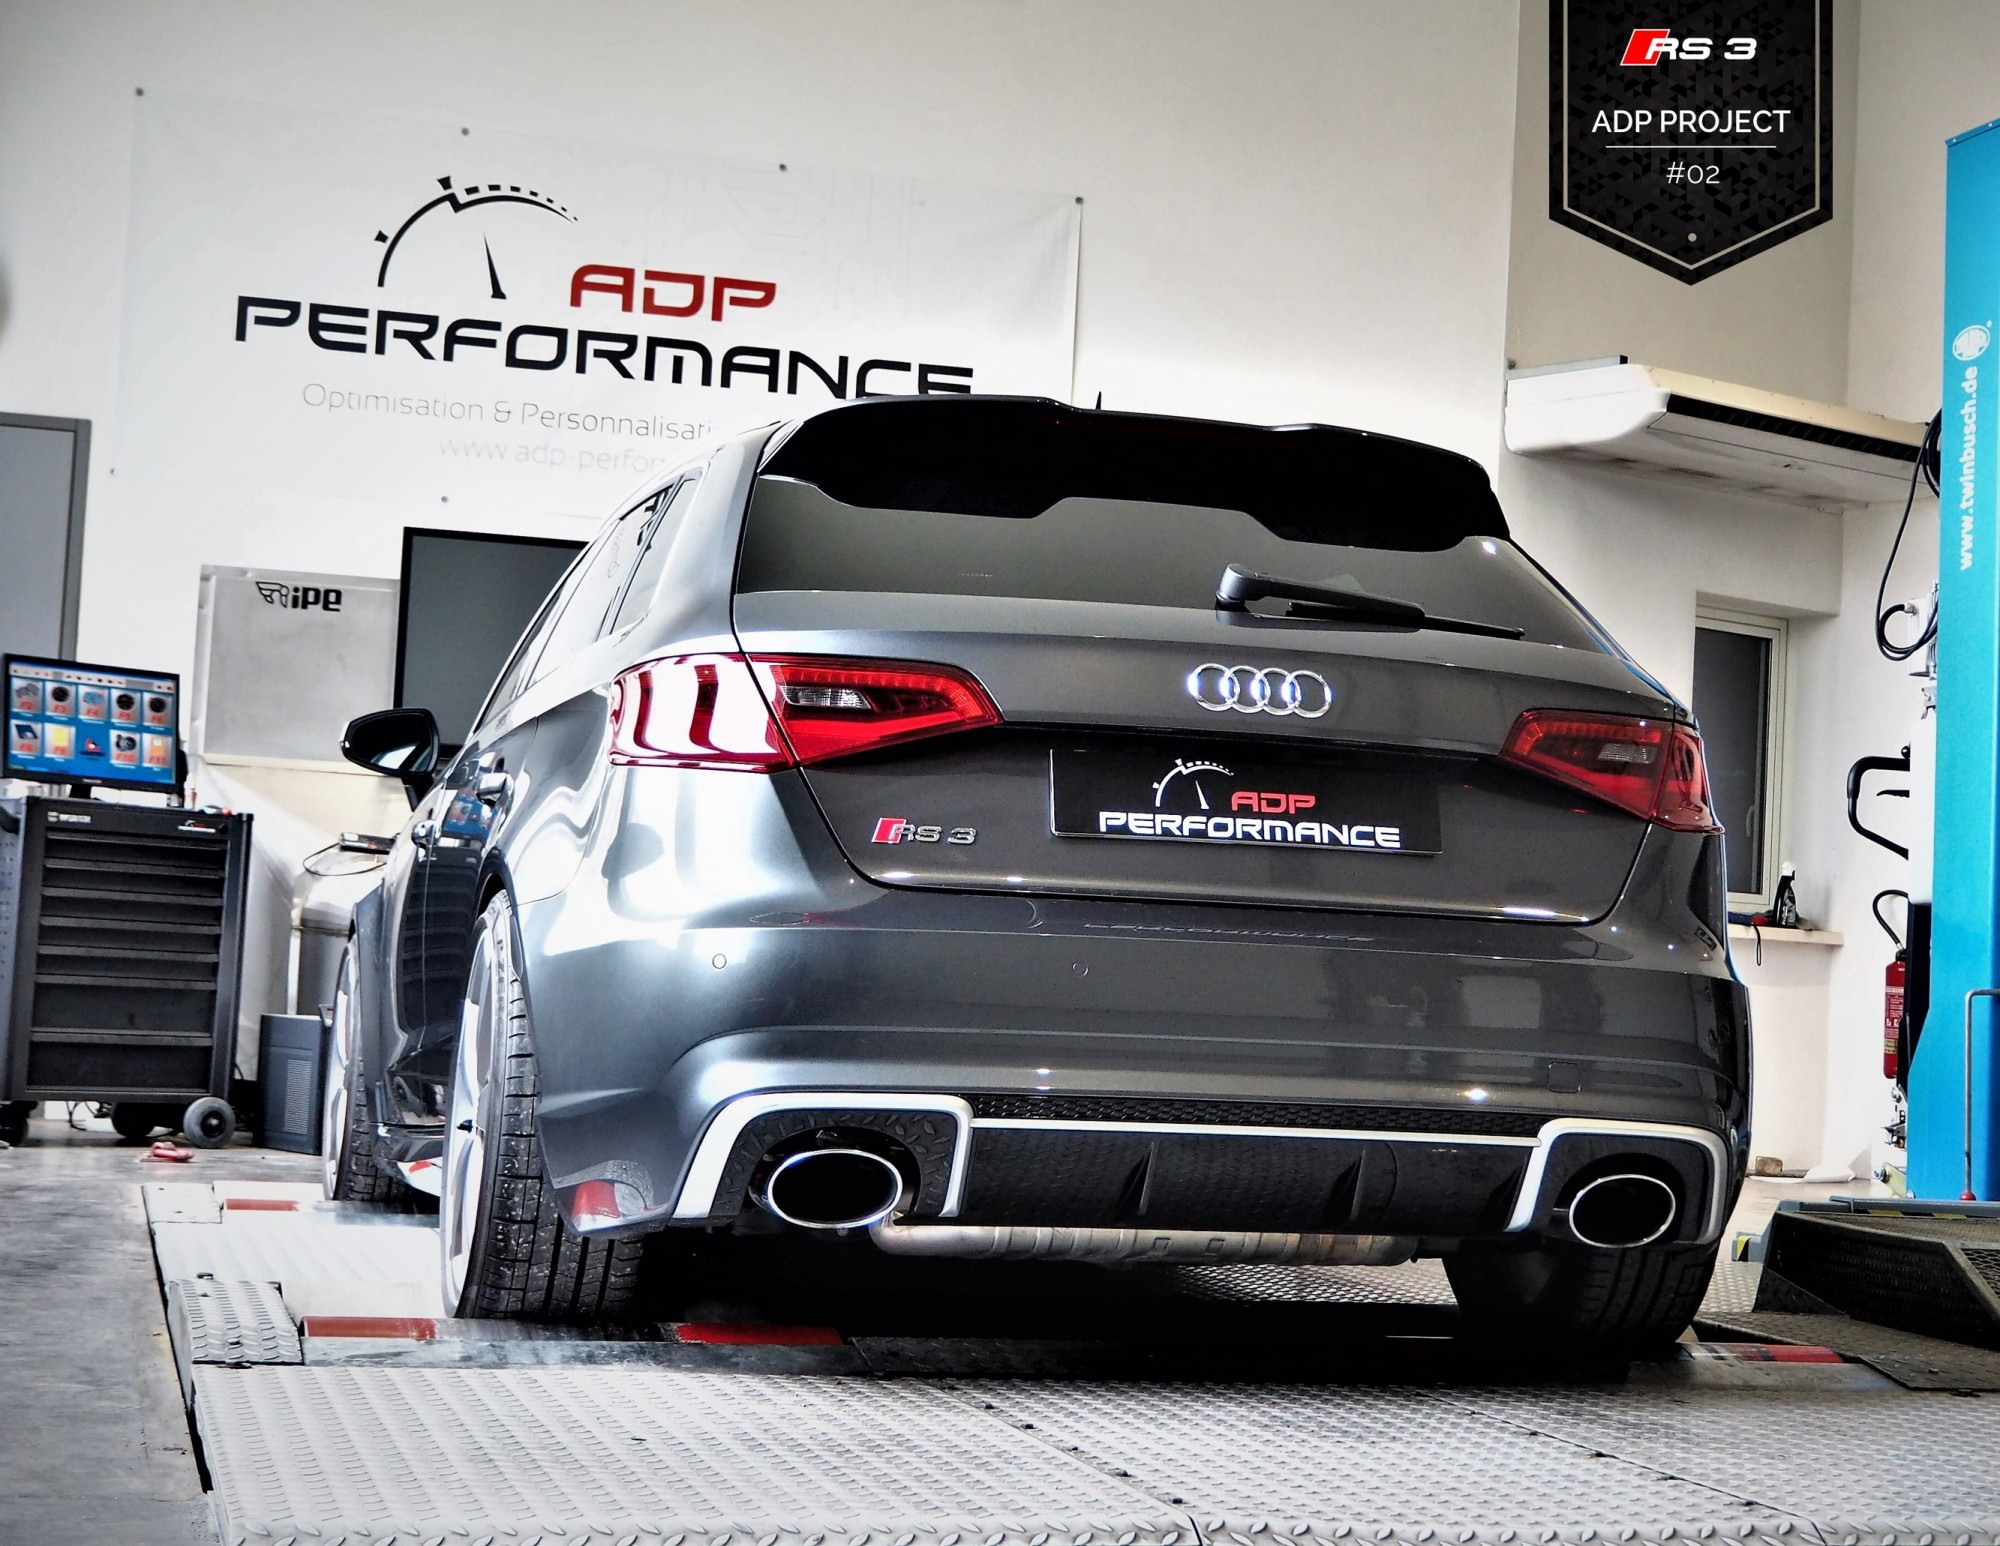 audi rs3 adp project 02 le stage 1 actualites. Black Bedroom Furniture Sets. Home Design Ideas